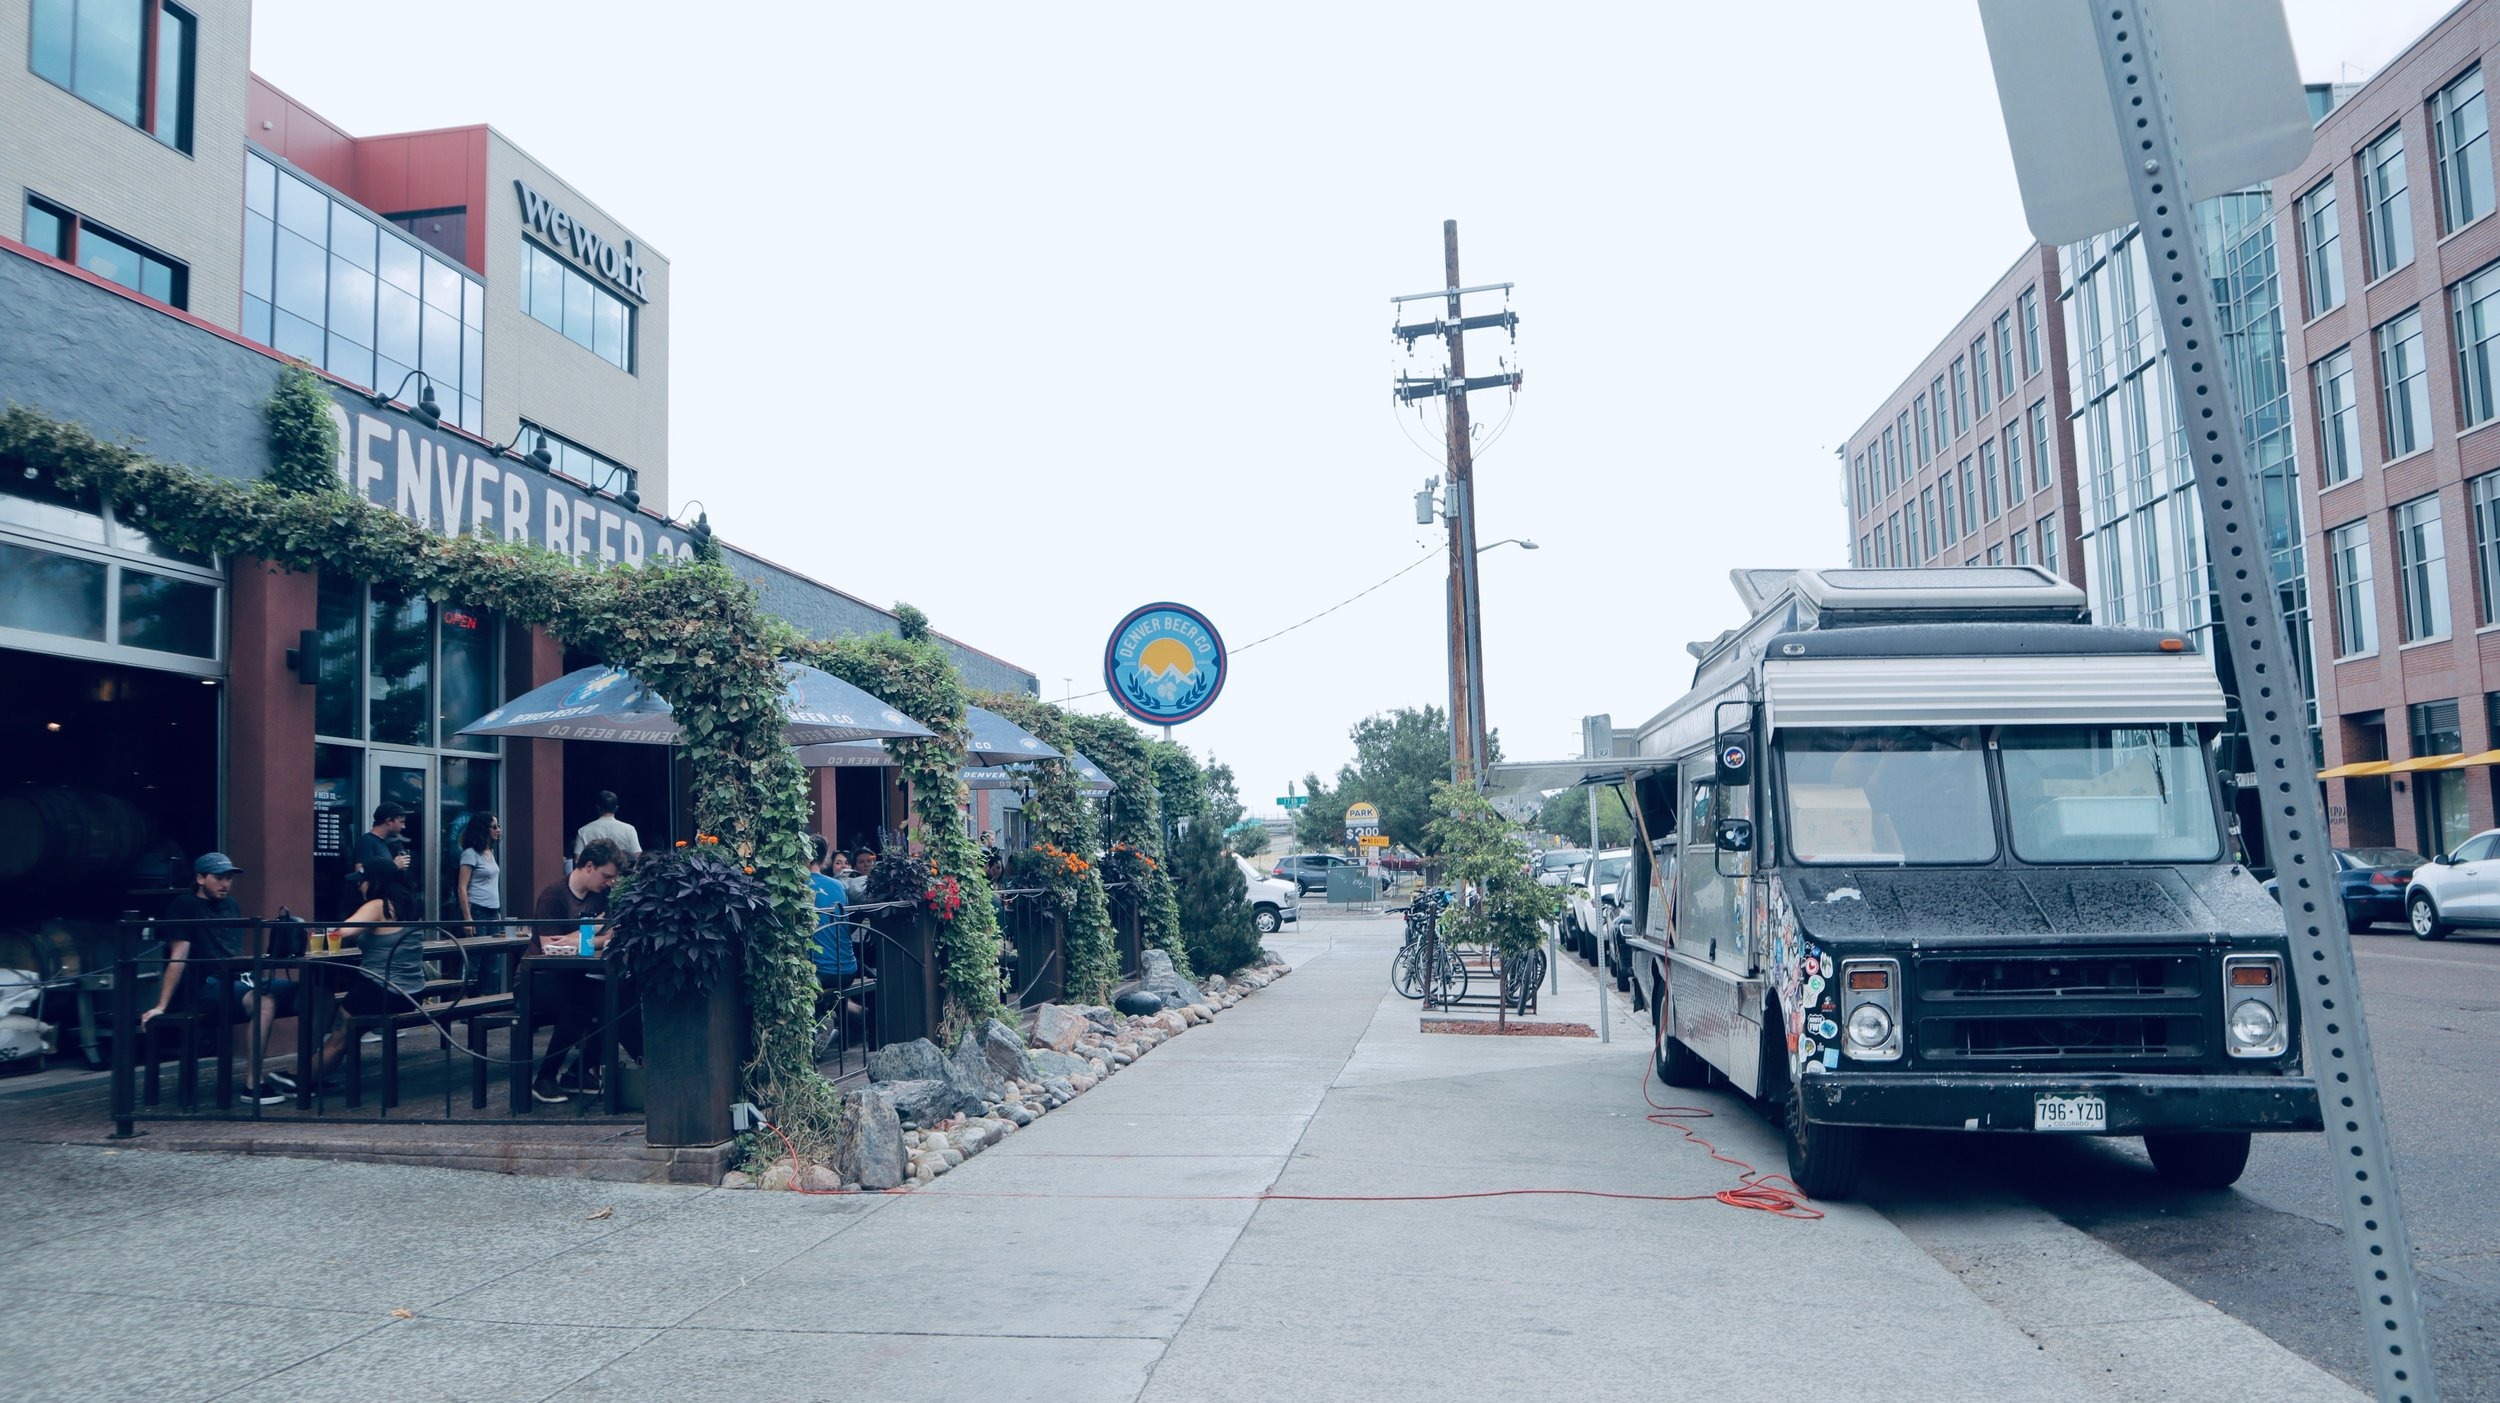 Food truck at the Denver Beer Company